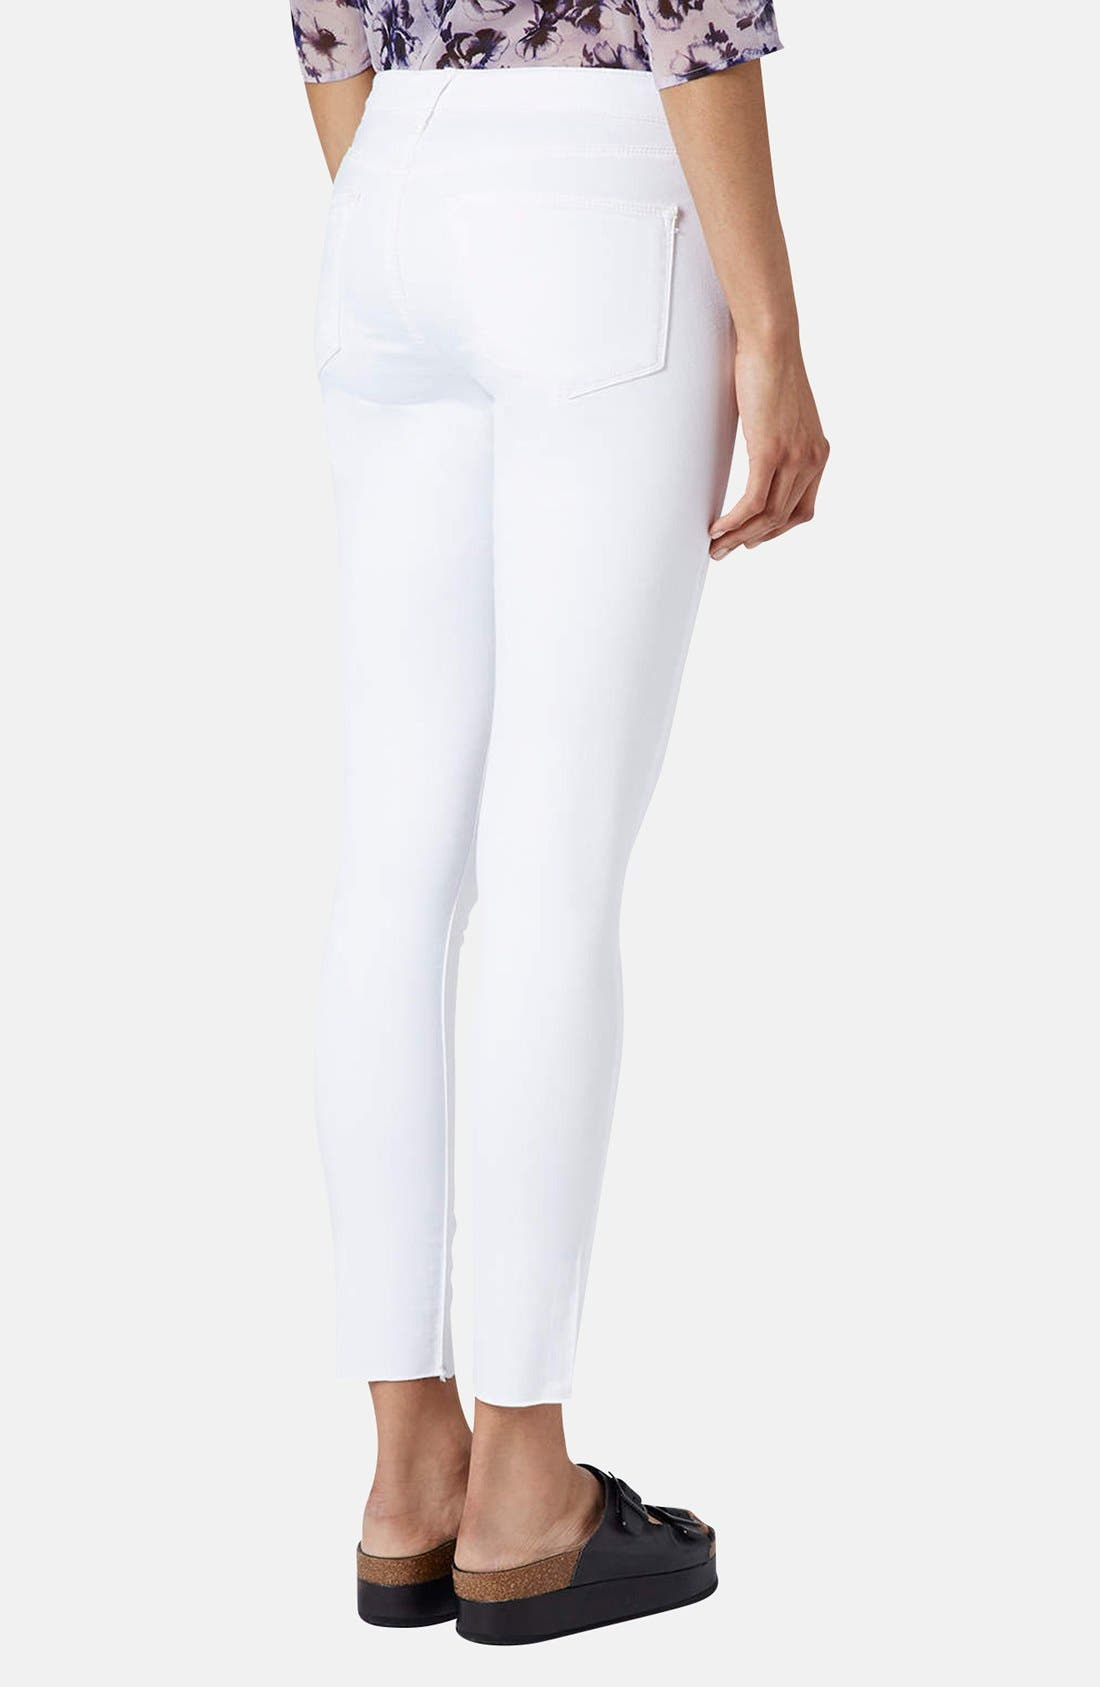 TOPSHOP, Moto 'Leigh' Distressed Skinny Jeans, Alternate thumbnail 4, color, 100